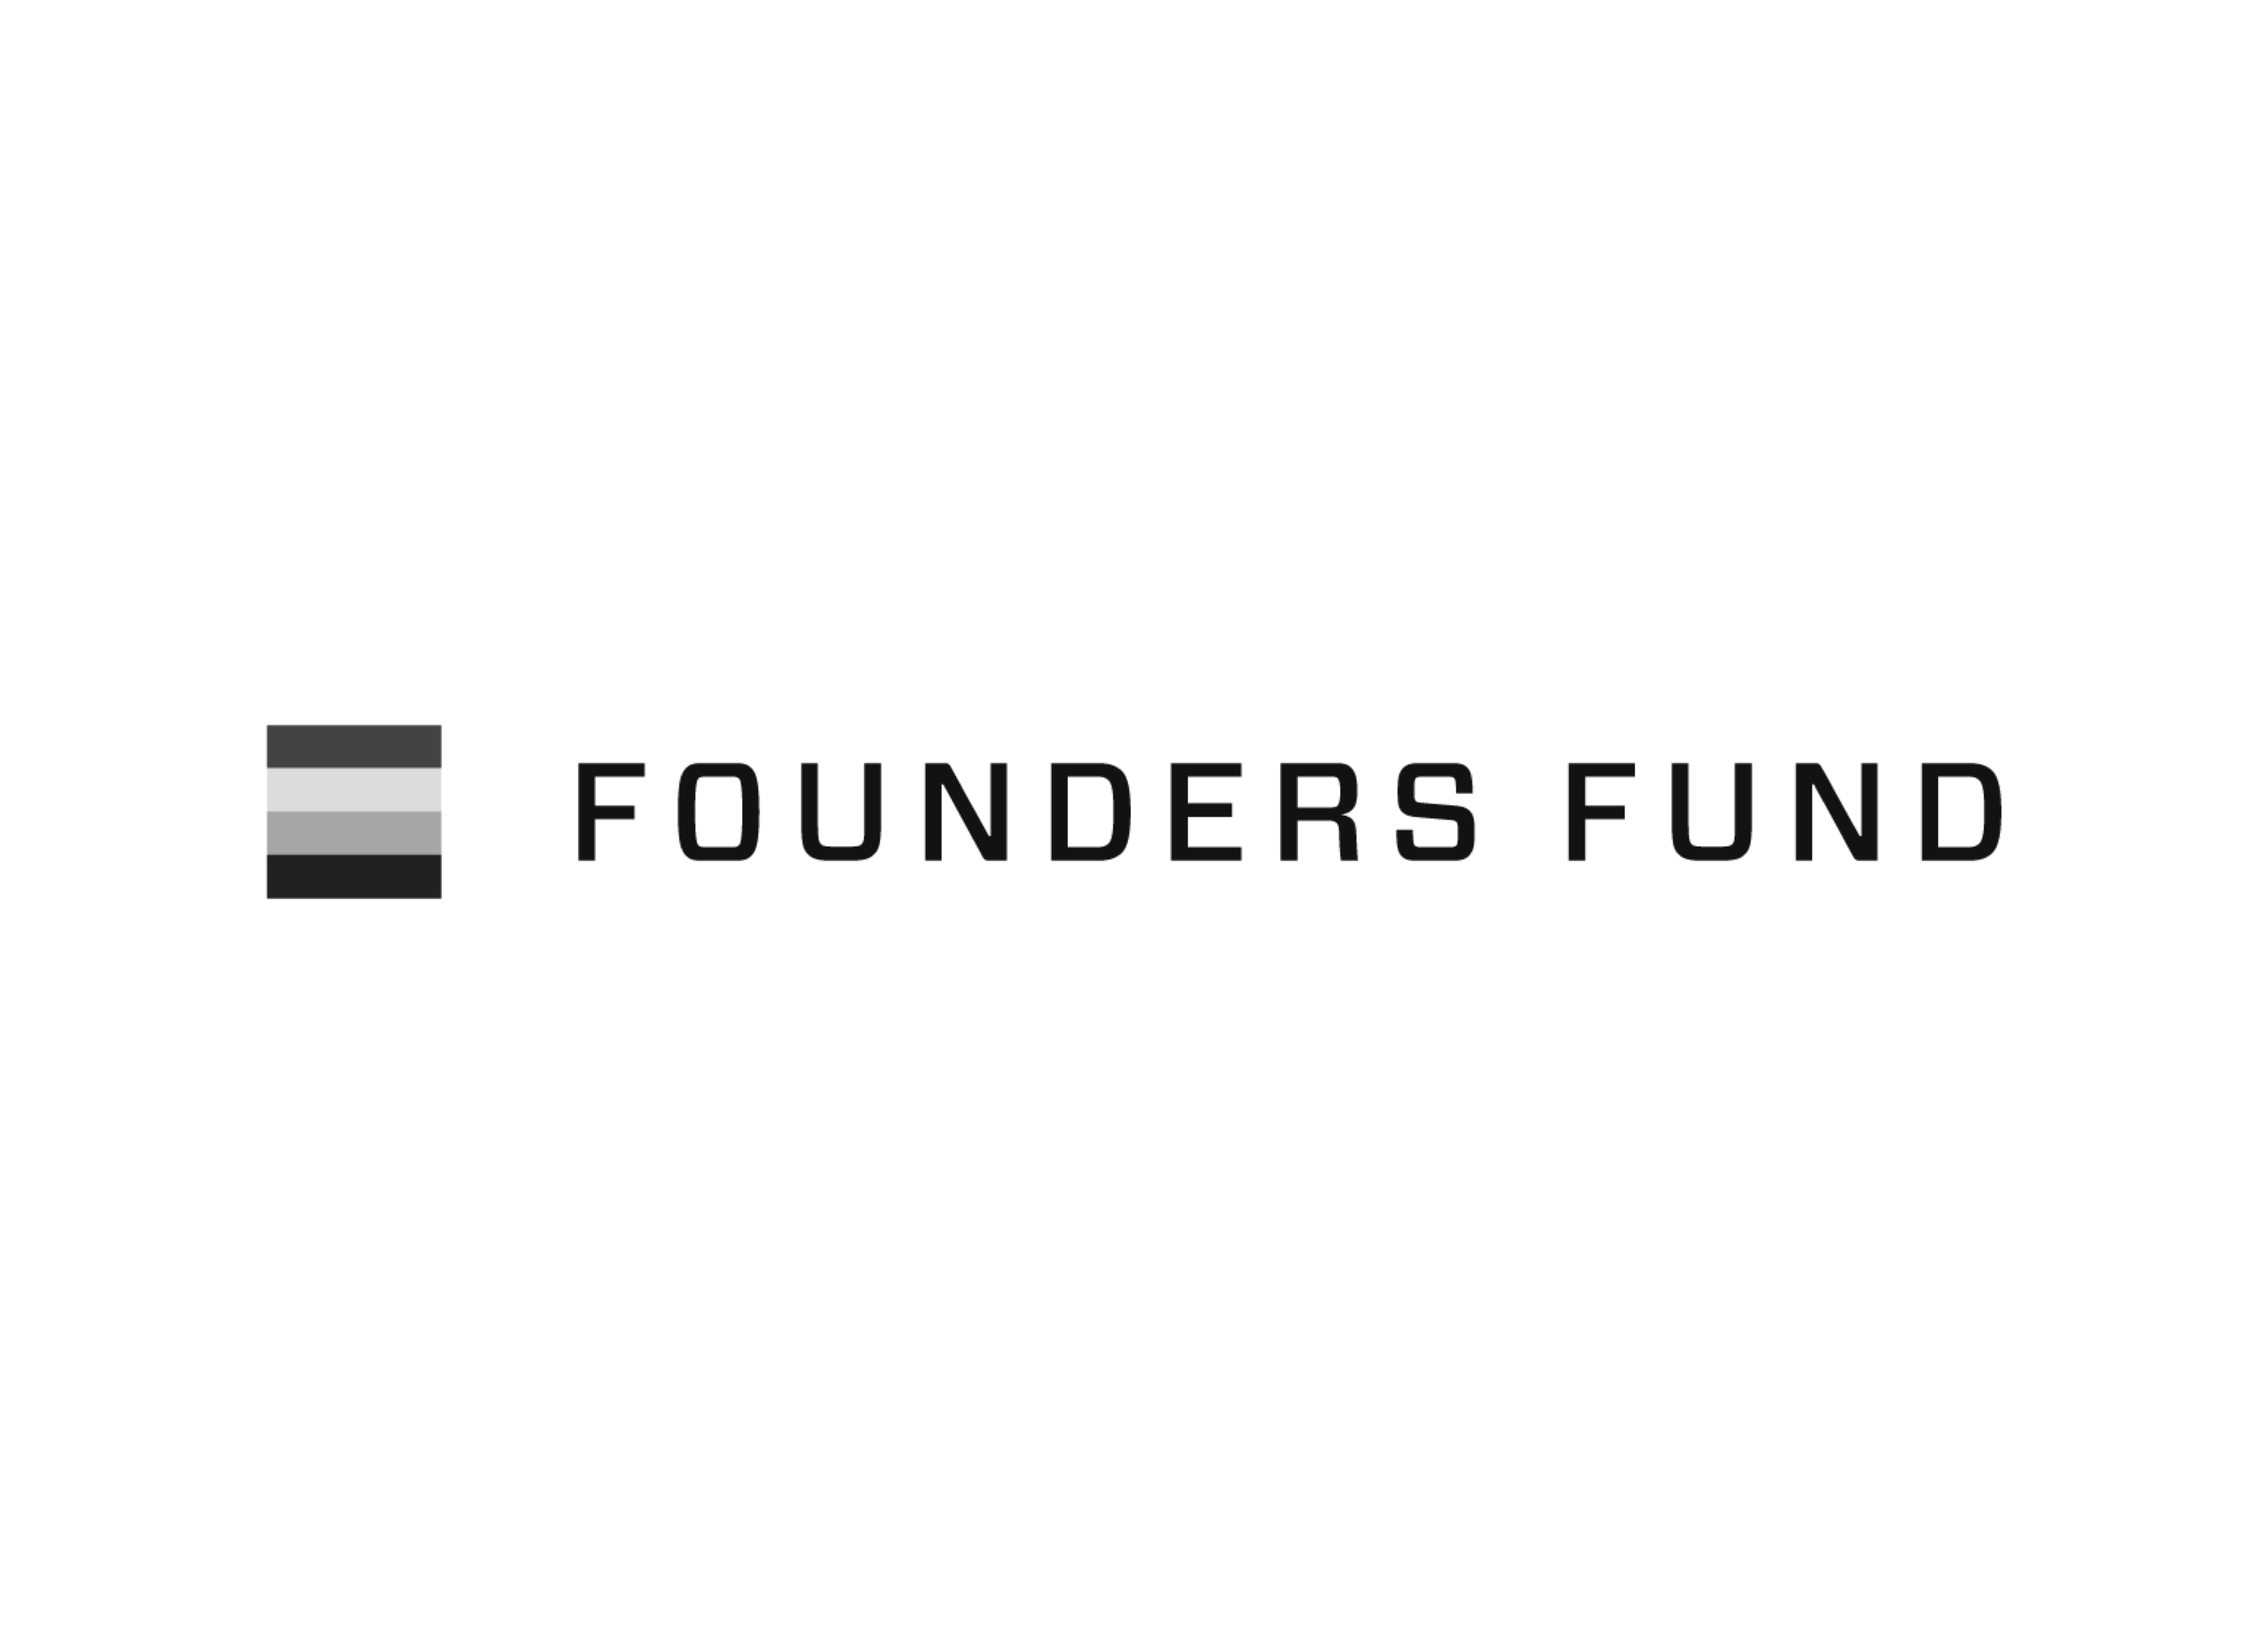 Founders Fund company logo